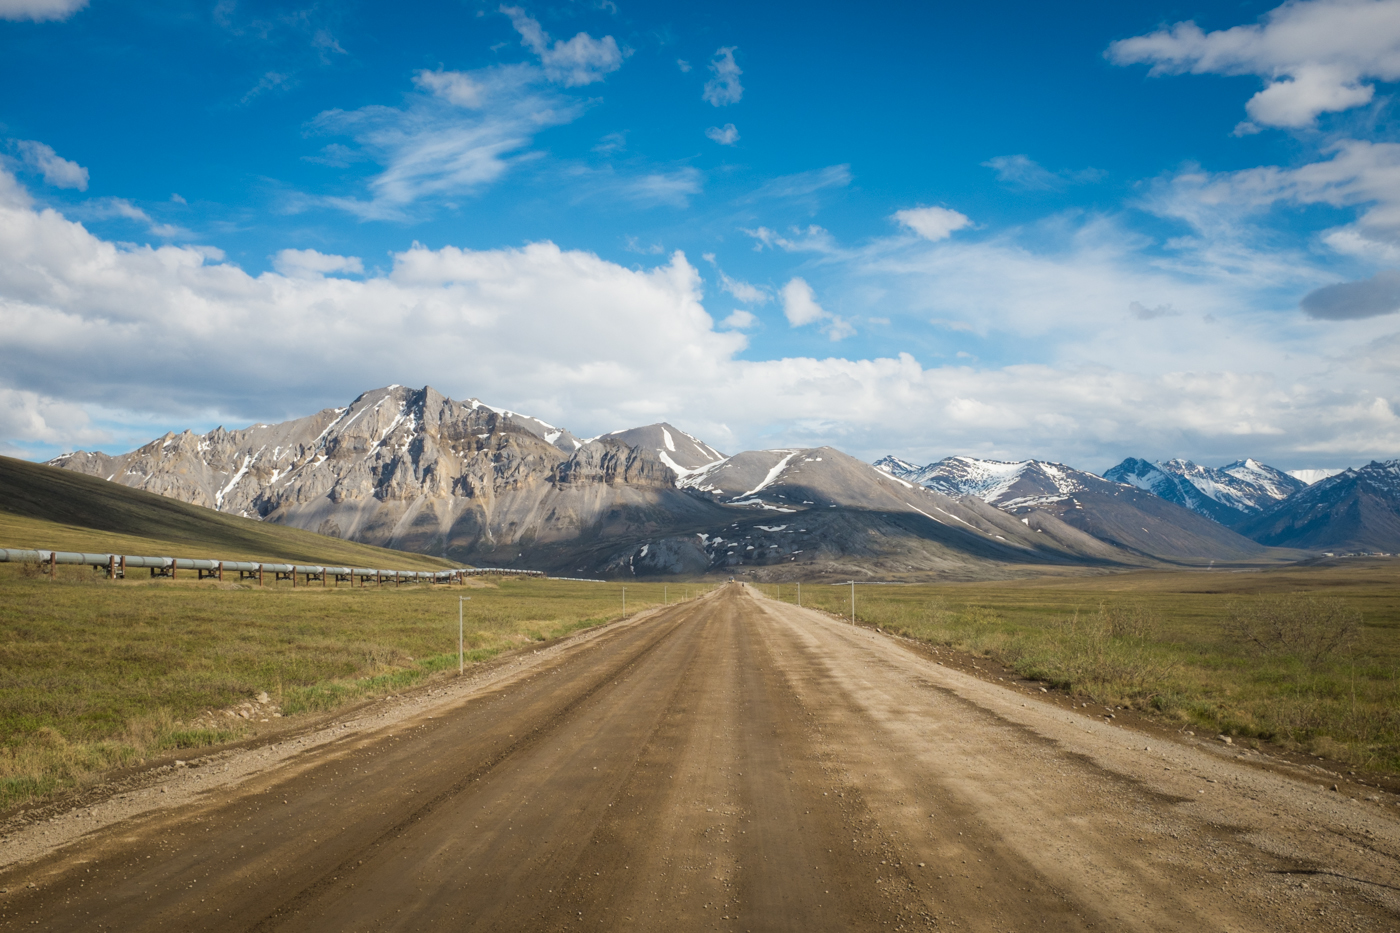 Peaks of the southern Brooks Range highlight the scenery along this stretch of the Dalton Highway